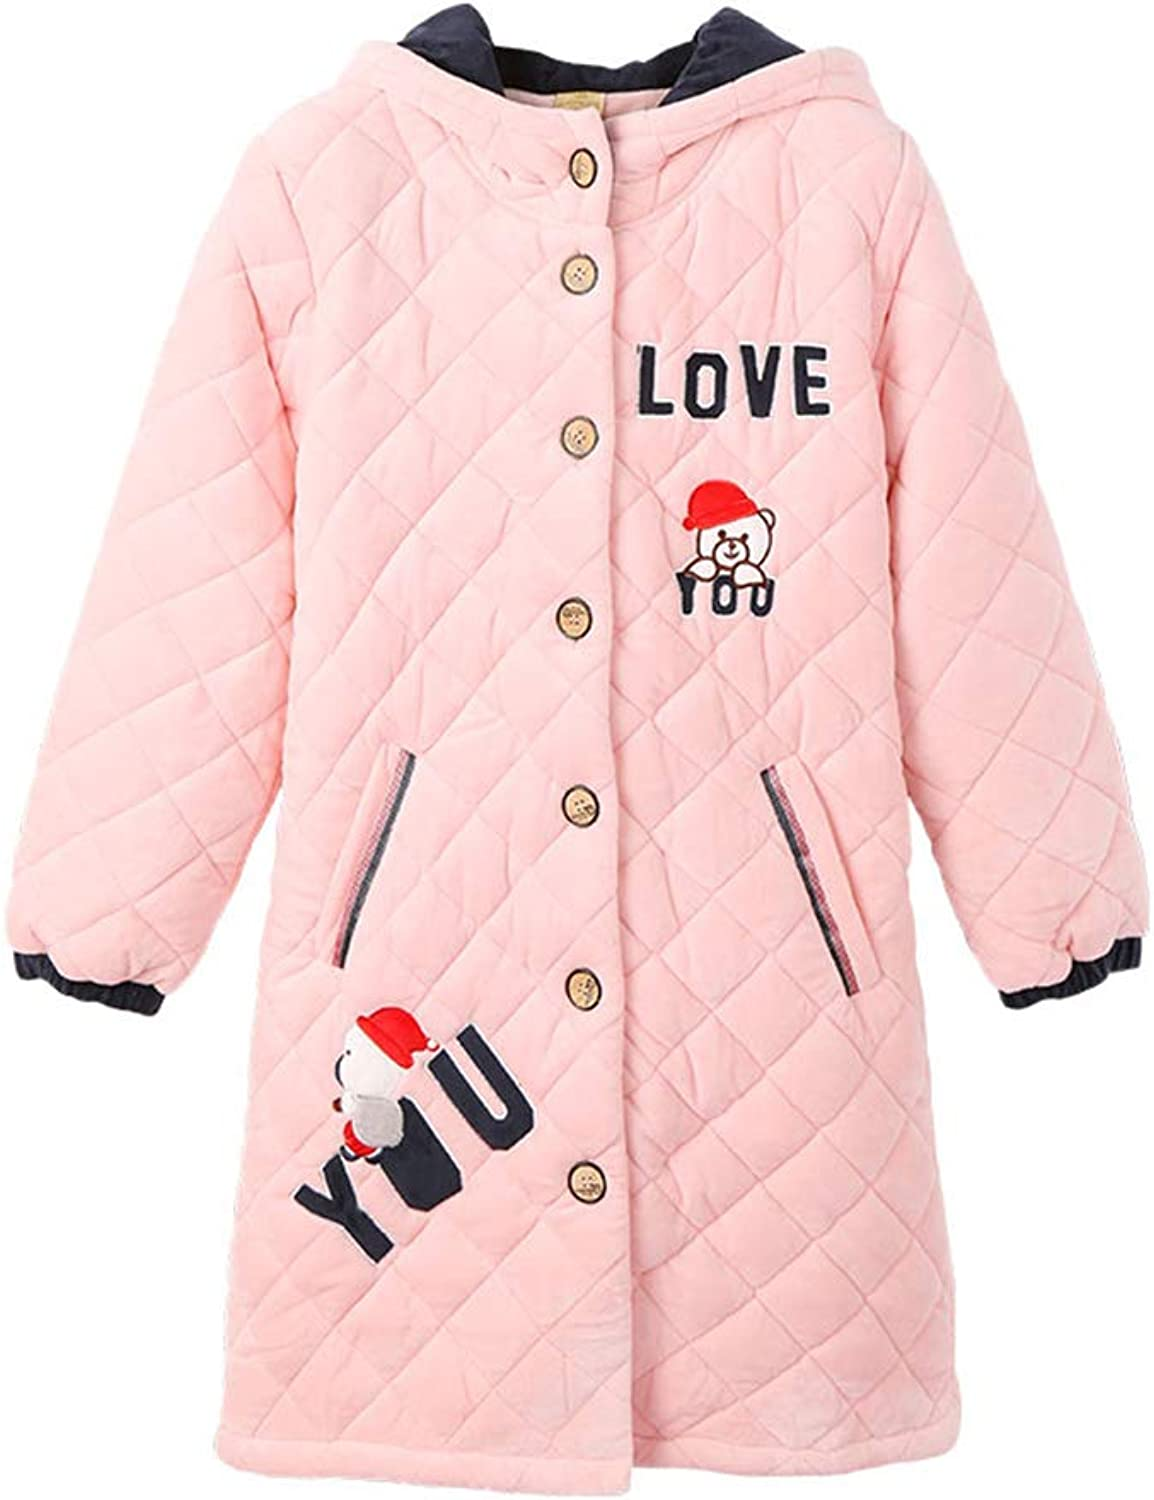 Pajamas Women's Thick Coral Fleece Quilted Gowns Cotton Jacket Sexy Cardigan Home Service Bathrobe (color   Yellow, Size   L)